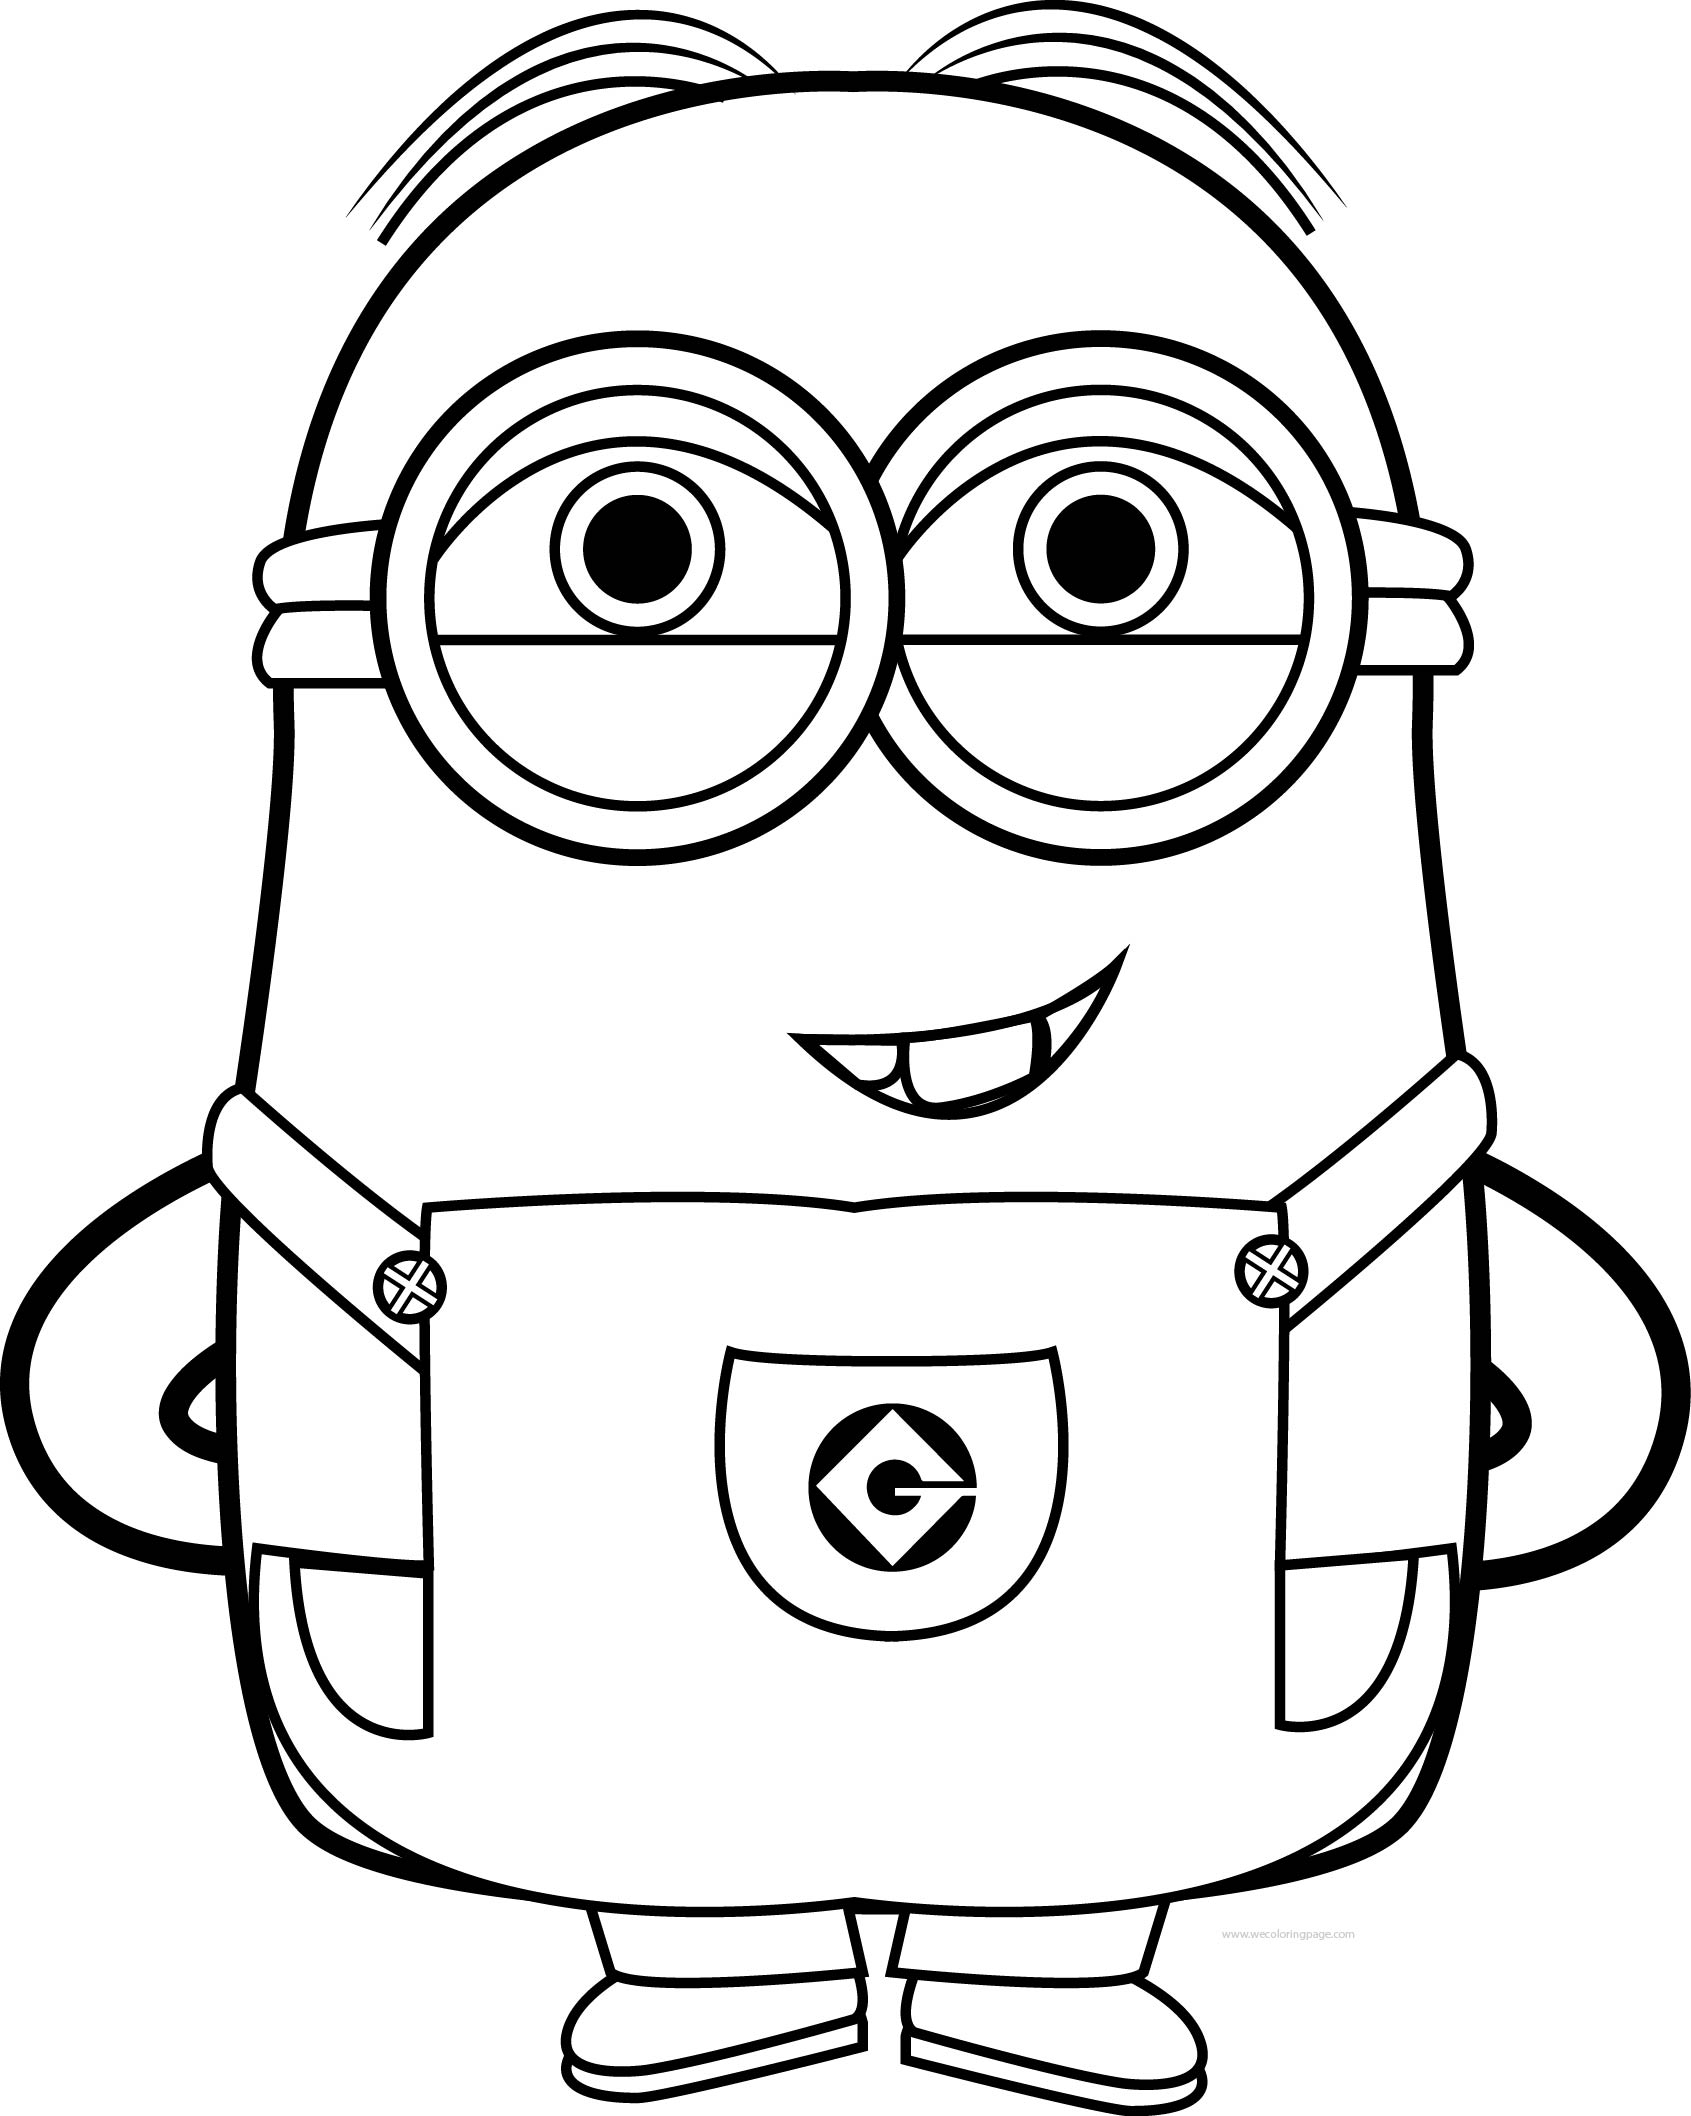 minion coloring book coloring pages for kids minions at getcoloringscom free book coloring minion